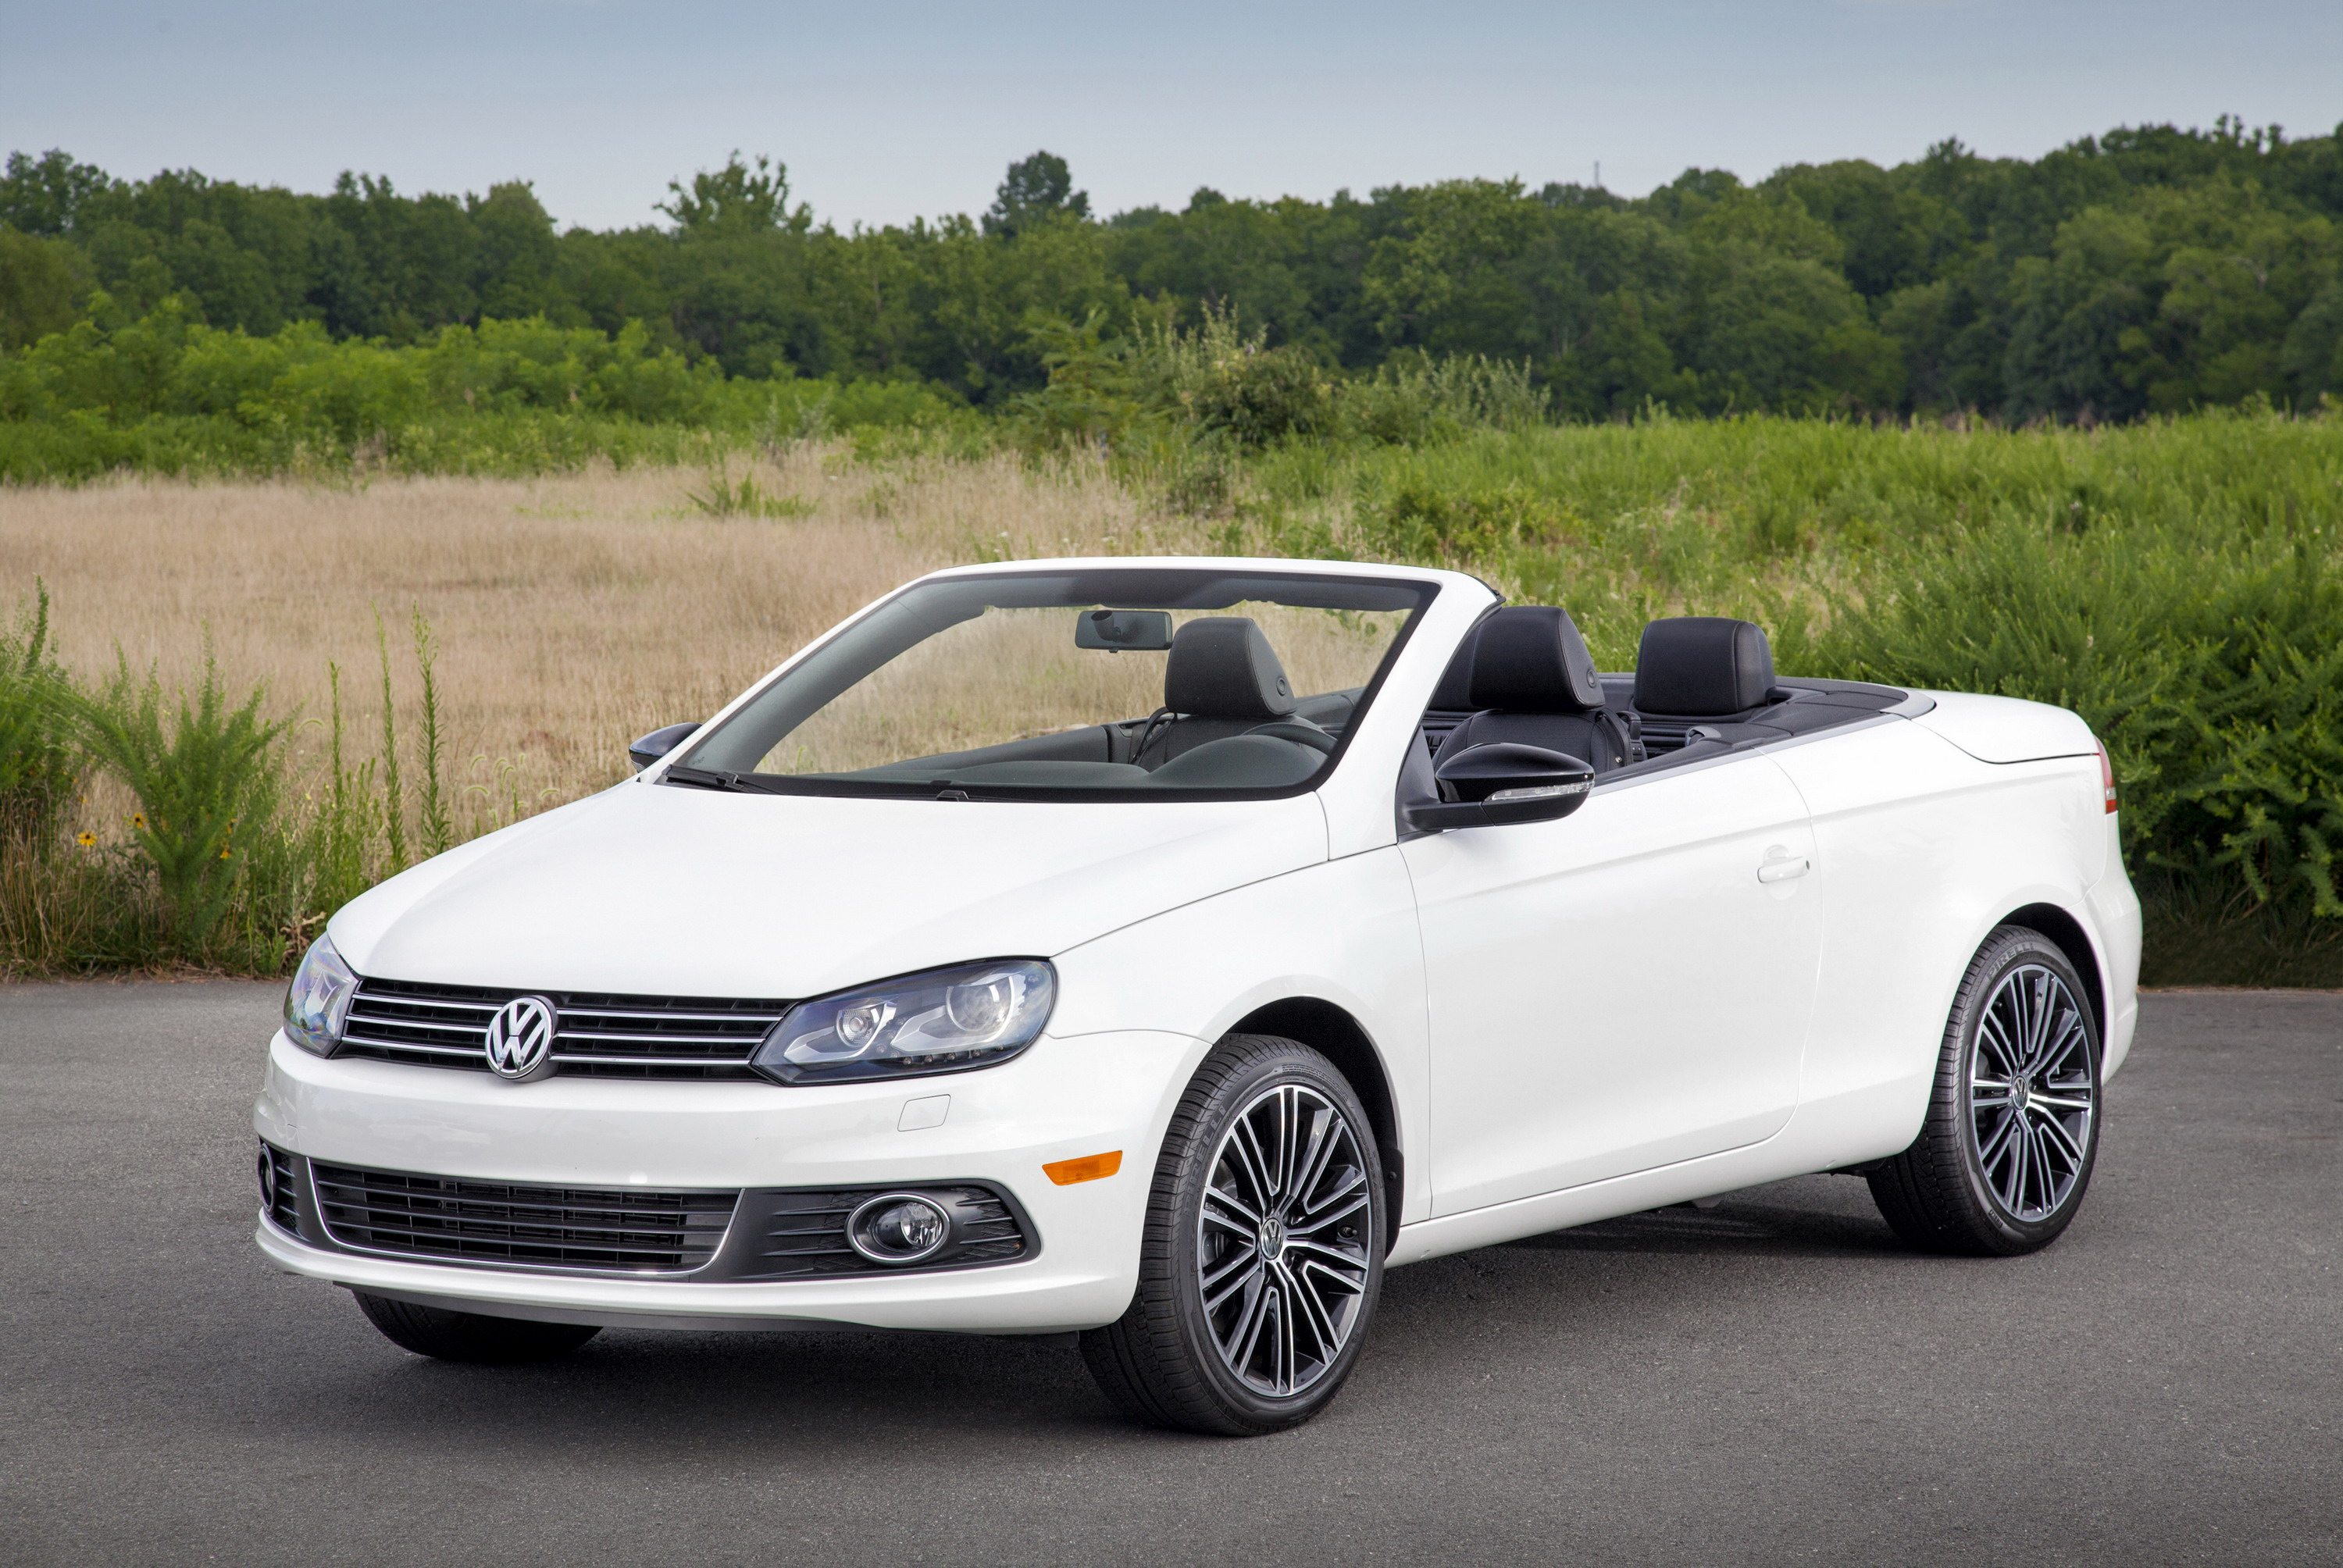 2014 volkswagen eos review top speed. Black Bedroom Furniture Sets. Home Design Ideas